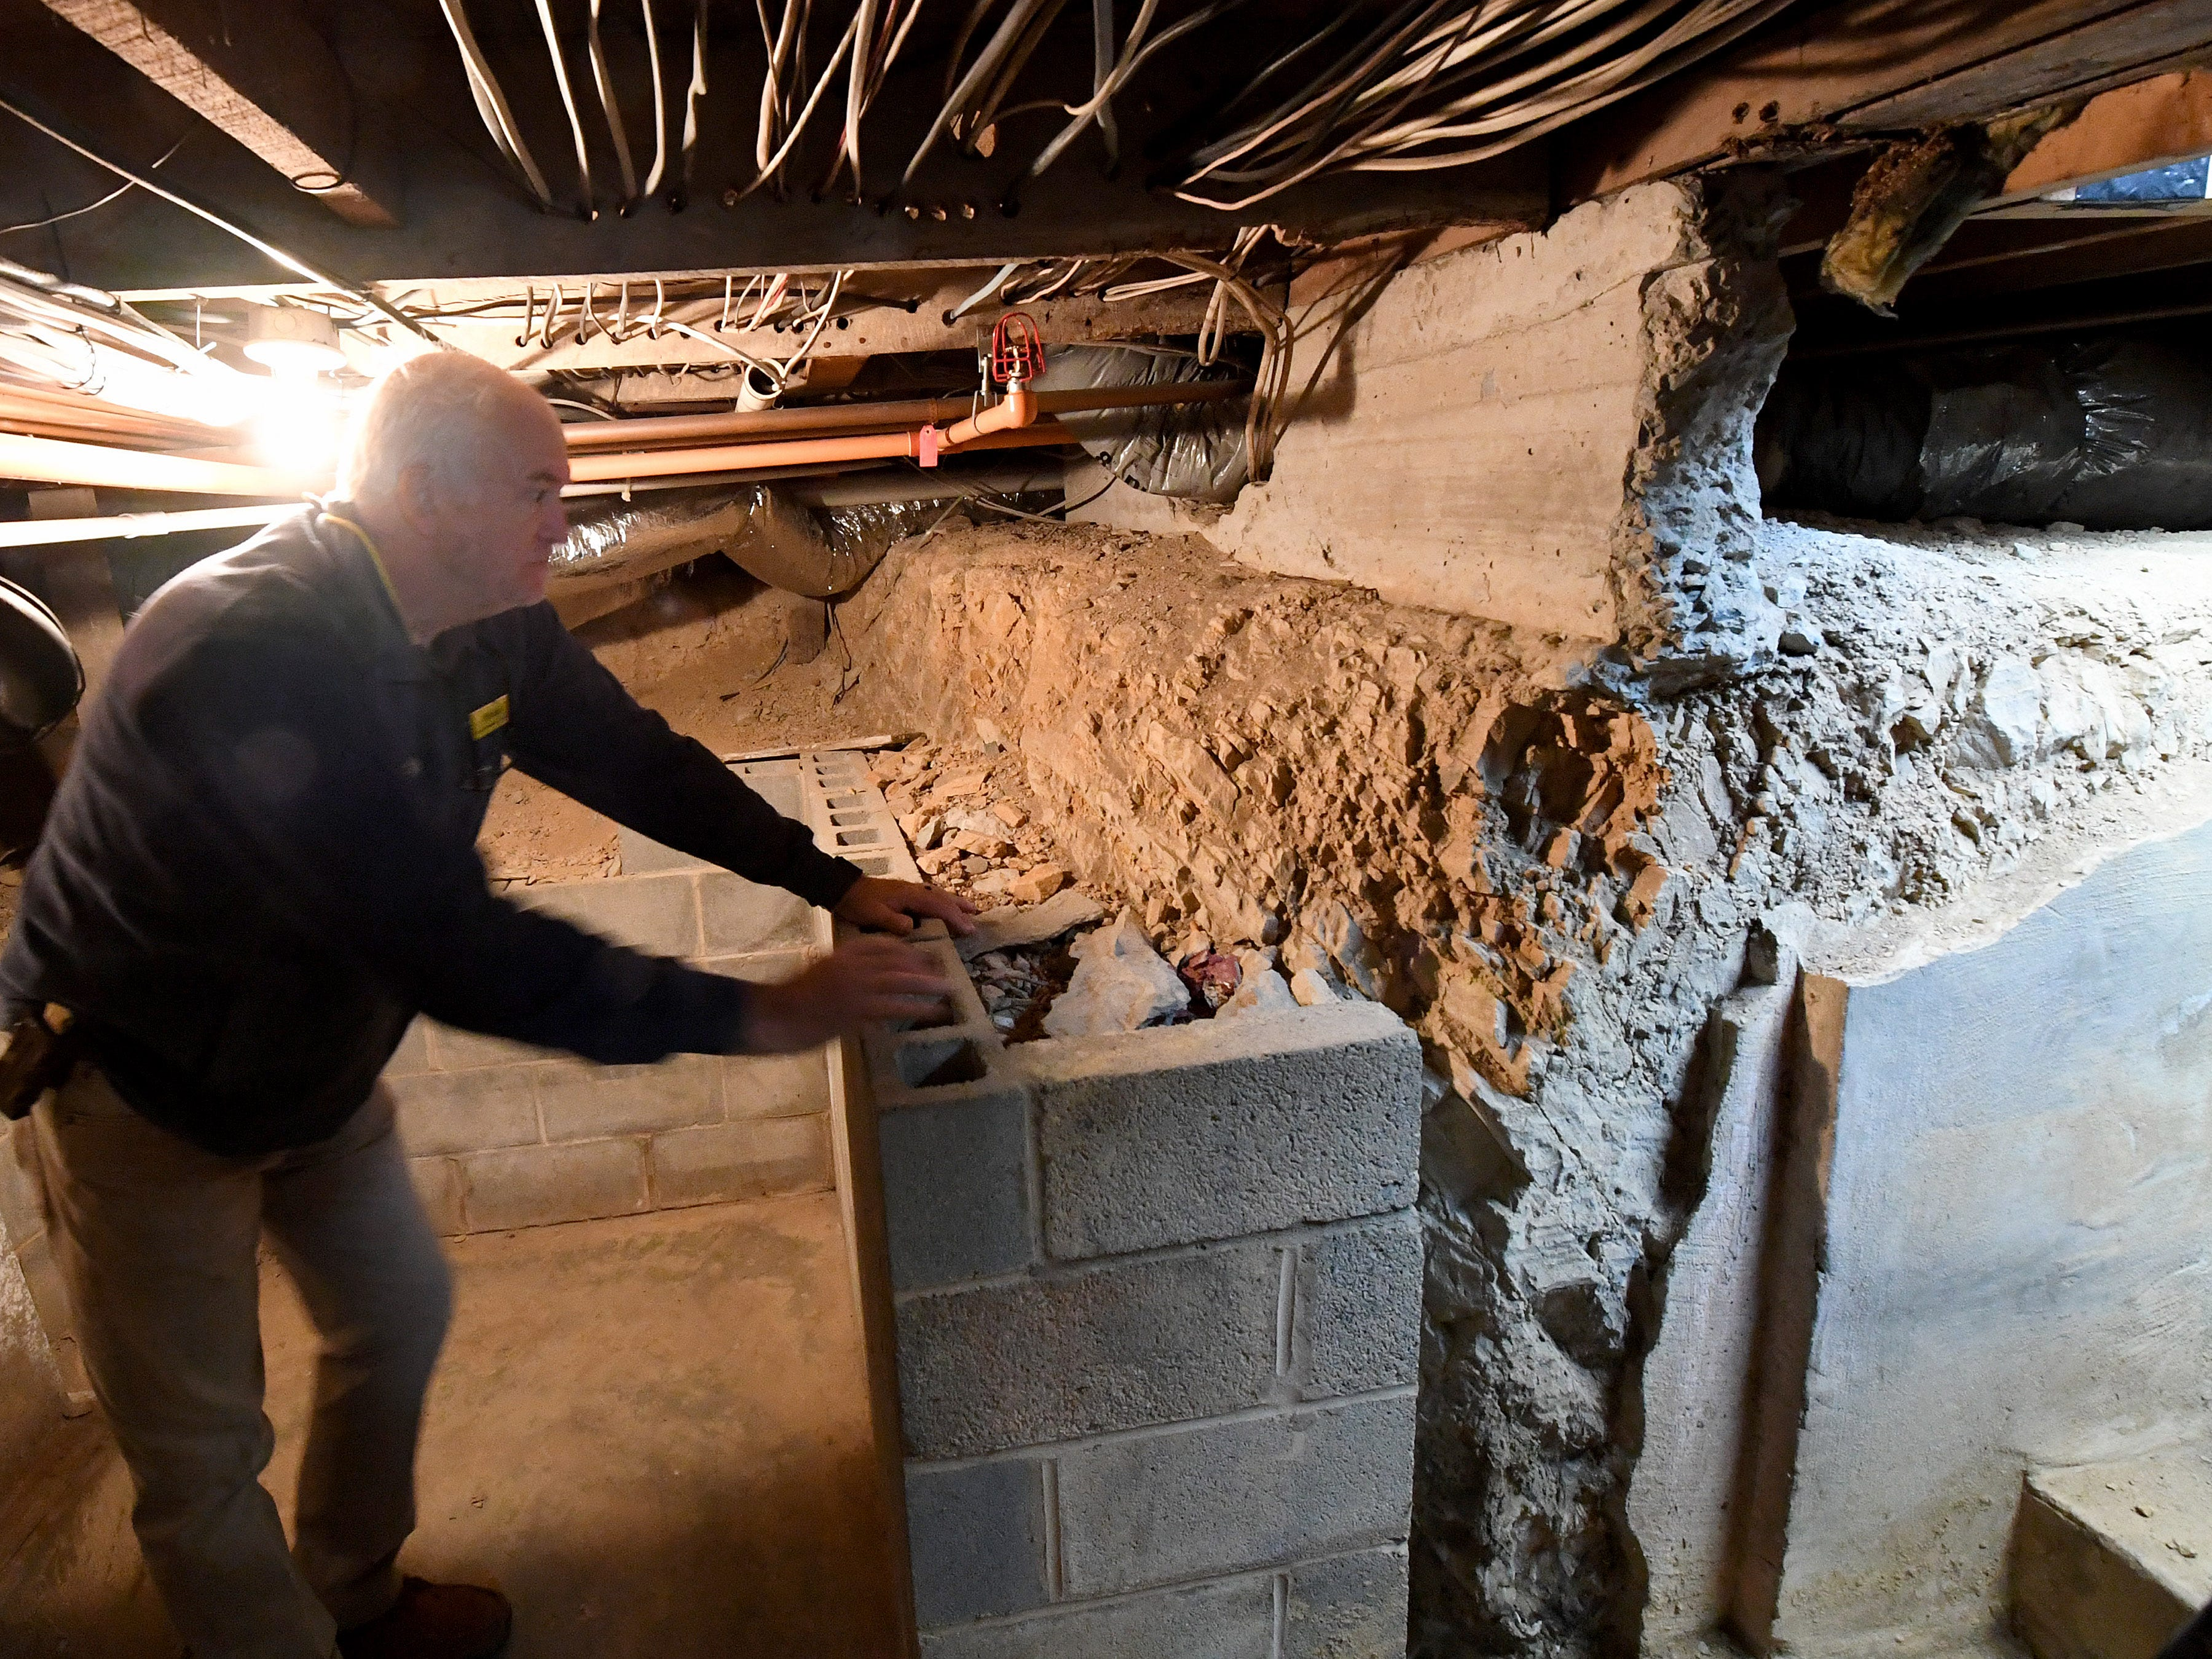 Co-owner and innkeeper Brian Westenberg talks about how the basement was originally dug out of the shale rock under the Inn at WestShire Farms in Staunton.